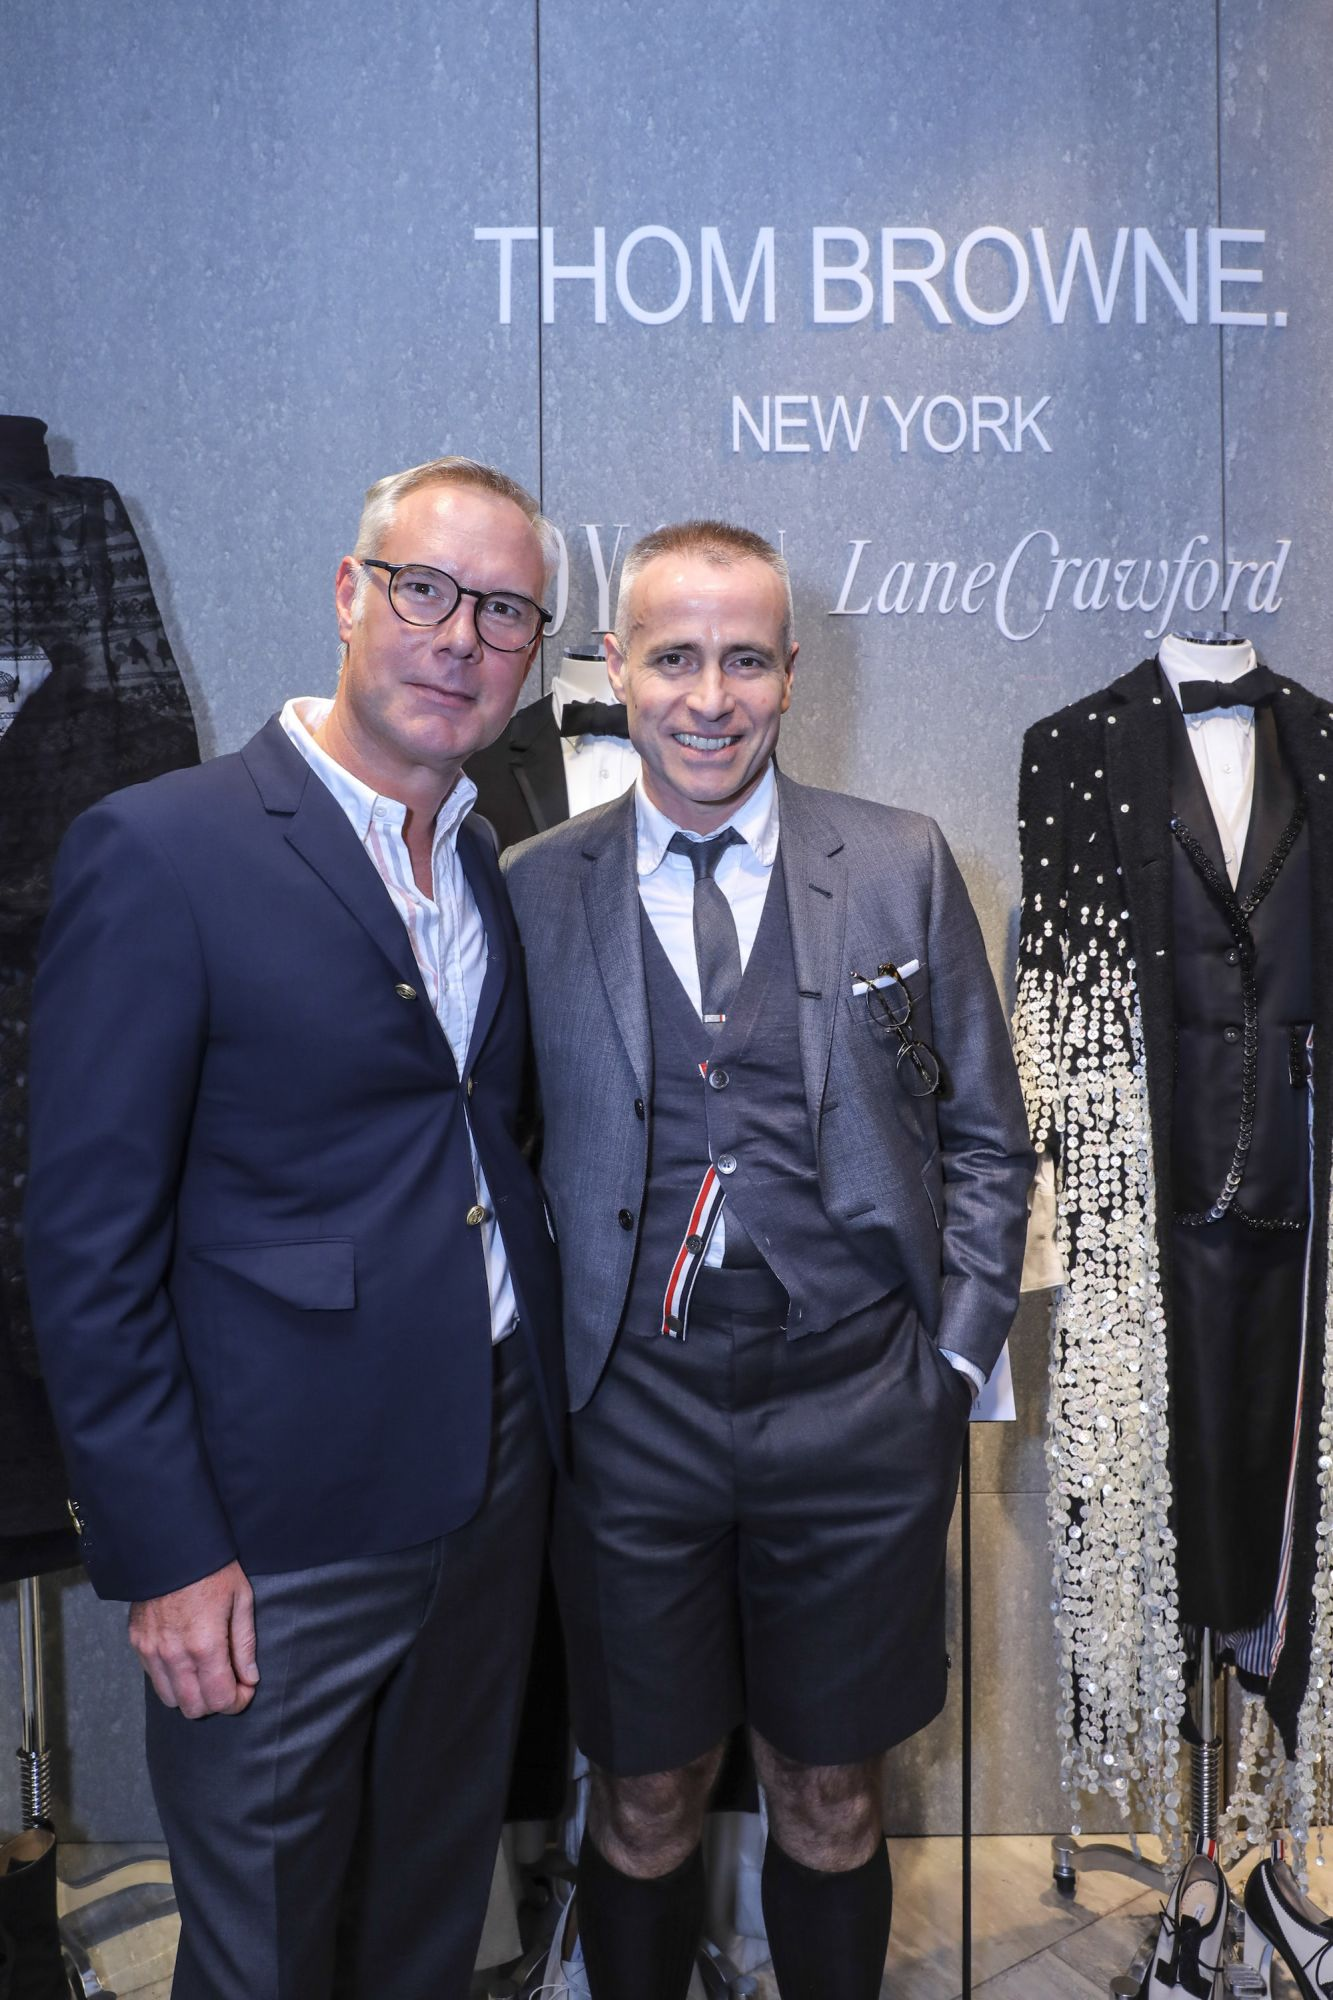 Andrew Keith, Thom Browne